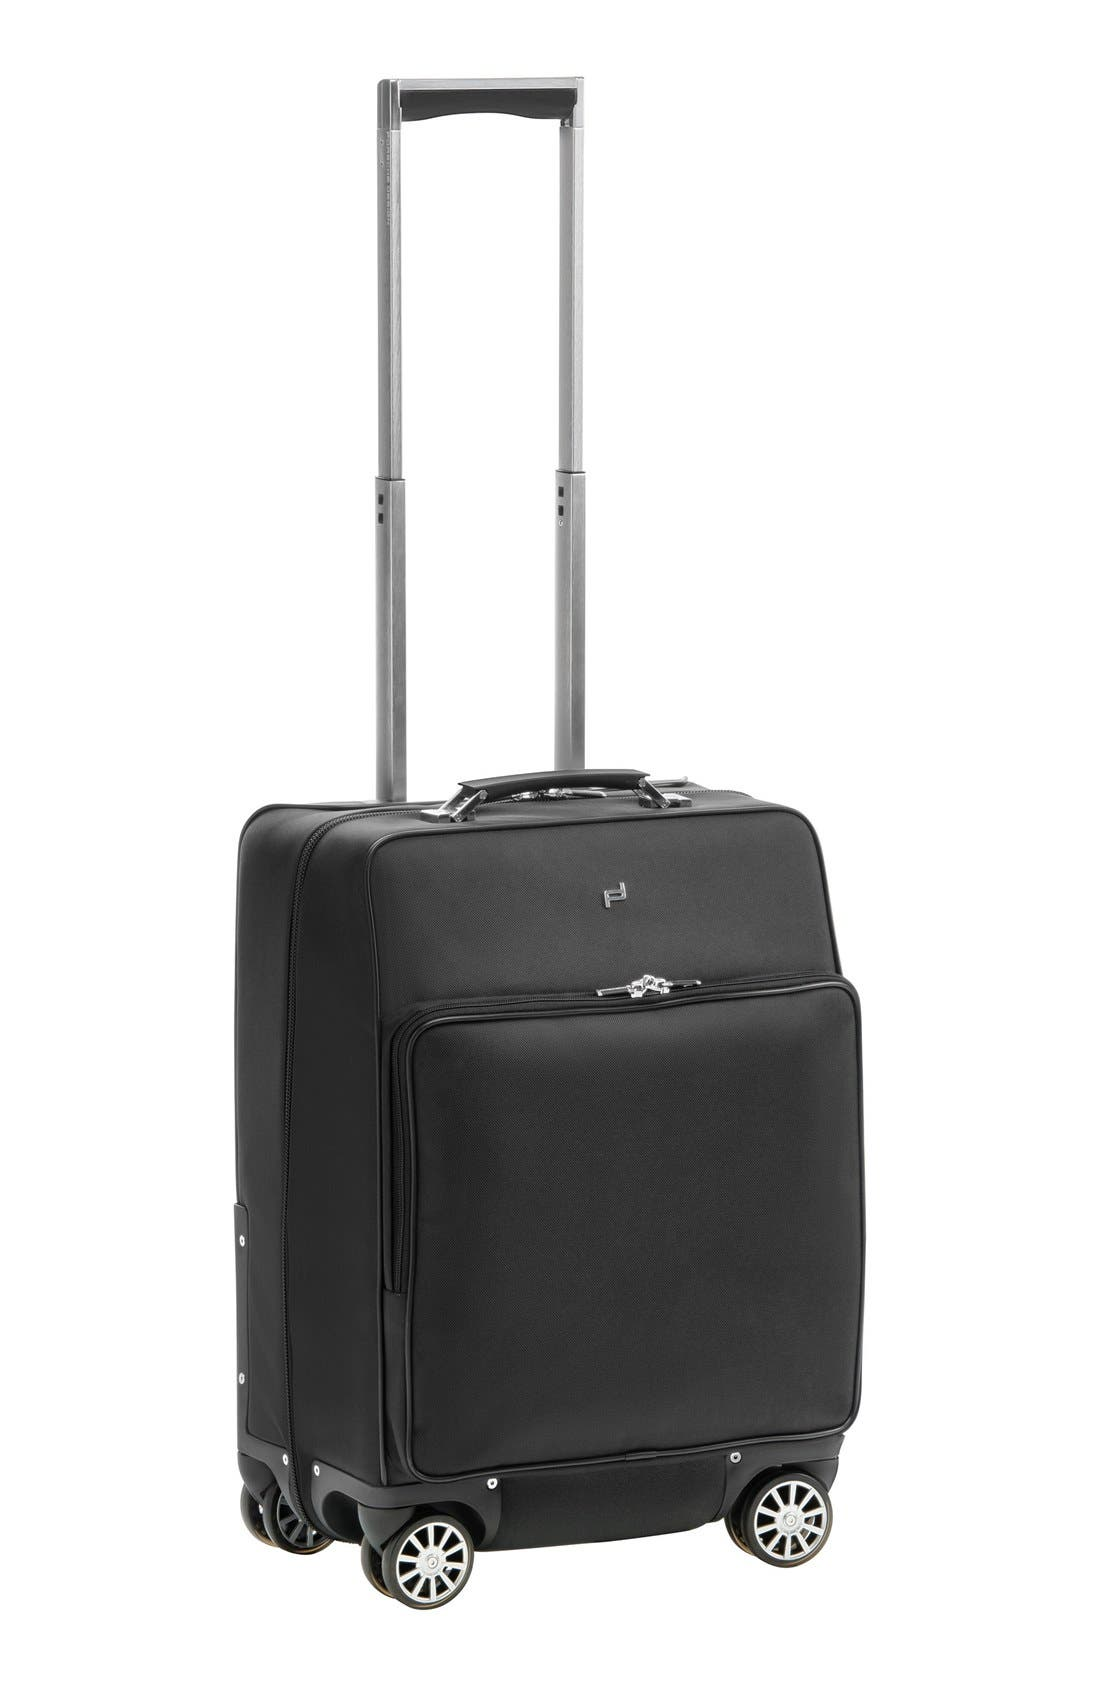 Porsche Design 'Roadster 550' Wheeled Carry-On